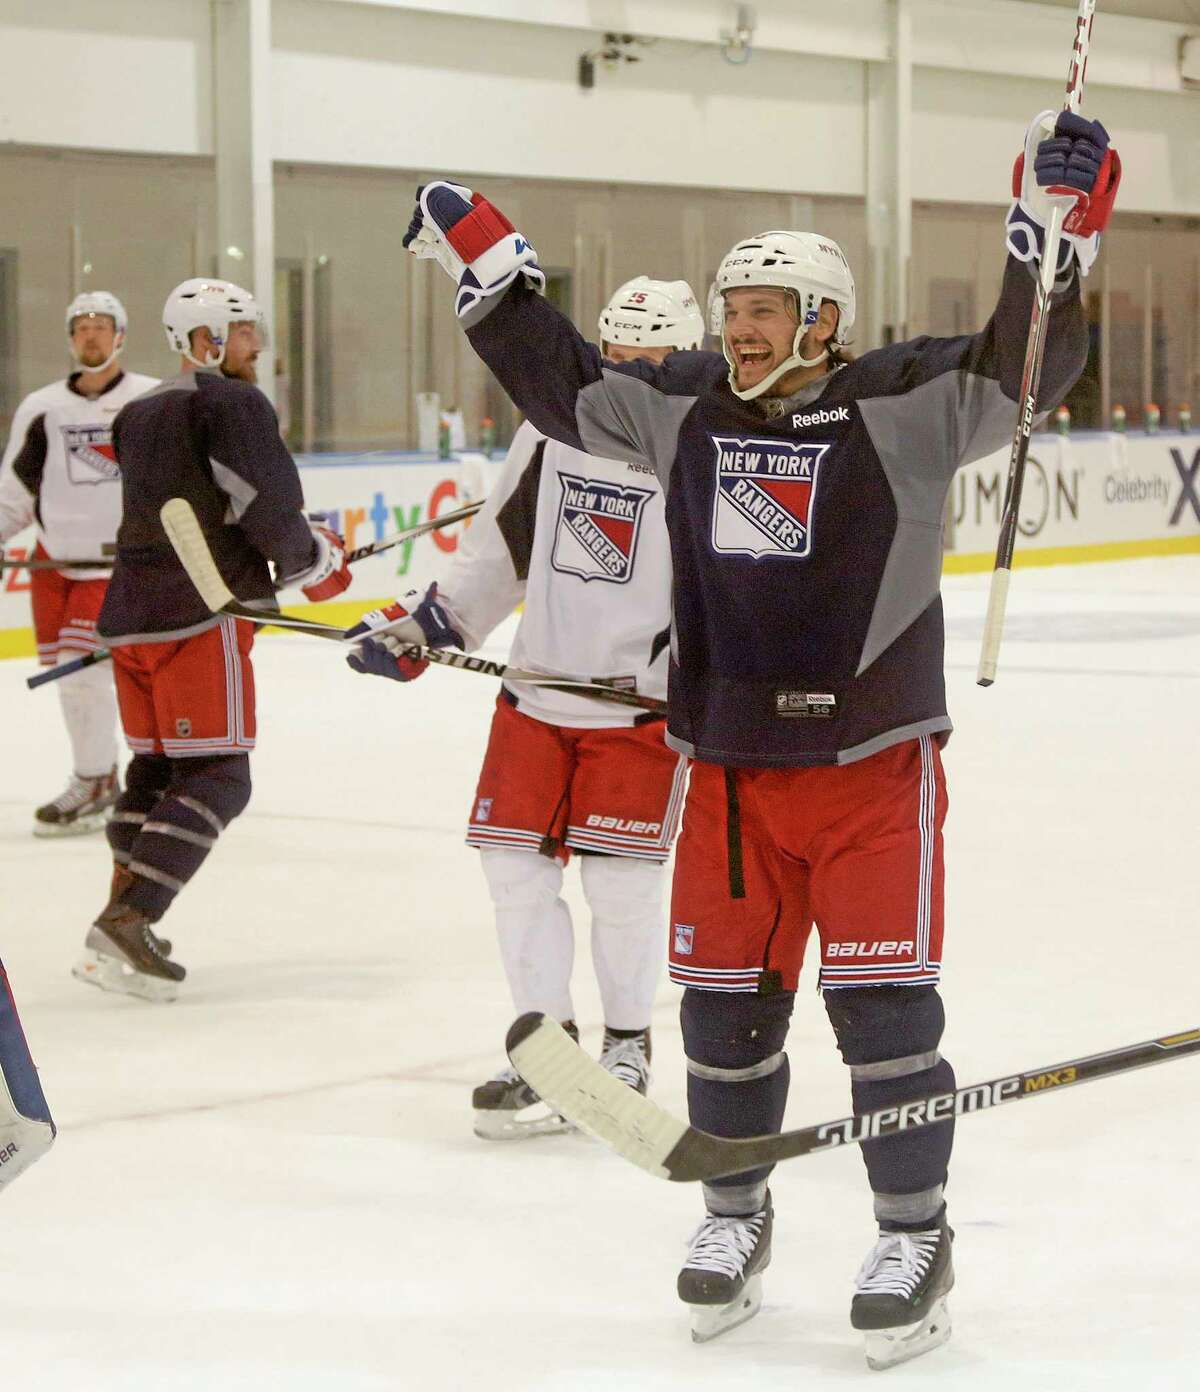 New York Rangers left wing Daniel Carcillo reacts after a goal scored during Monday's practice in Greenburgh, New York. The Rangers will face the Los Angeles Kings in Game 1 of Stanley Cup finals on Wednesday in Los Angeles.